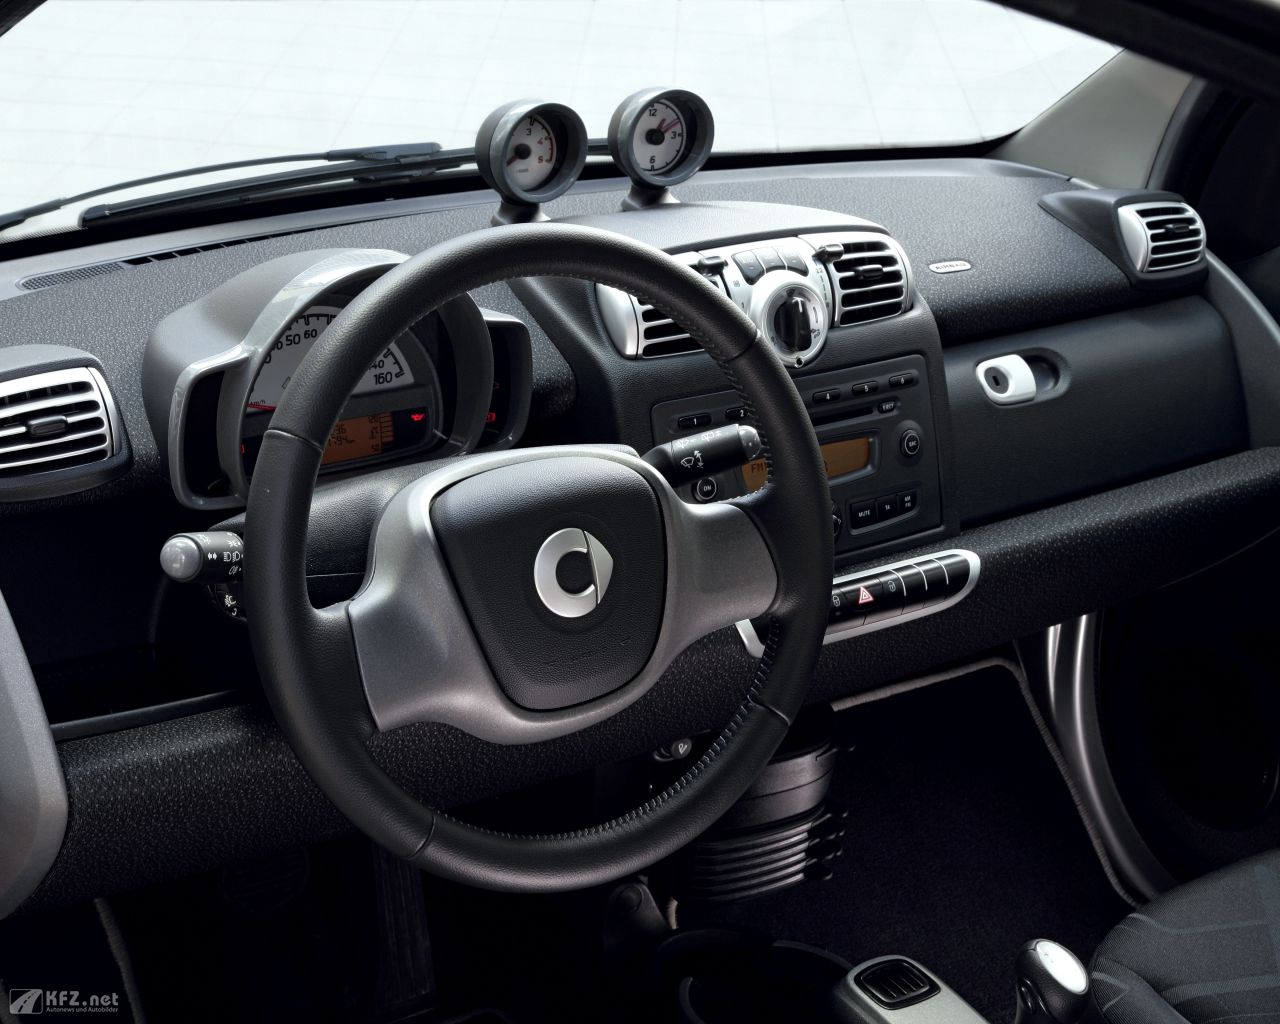 smart-fortwo-1280x1024-7